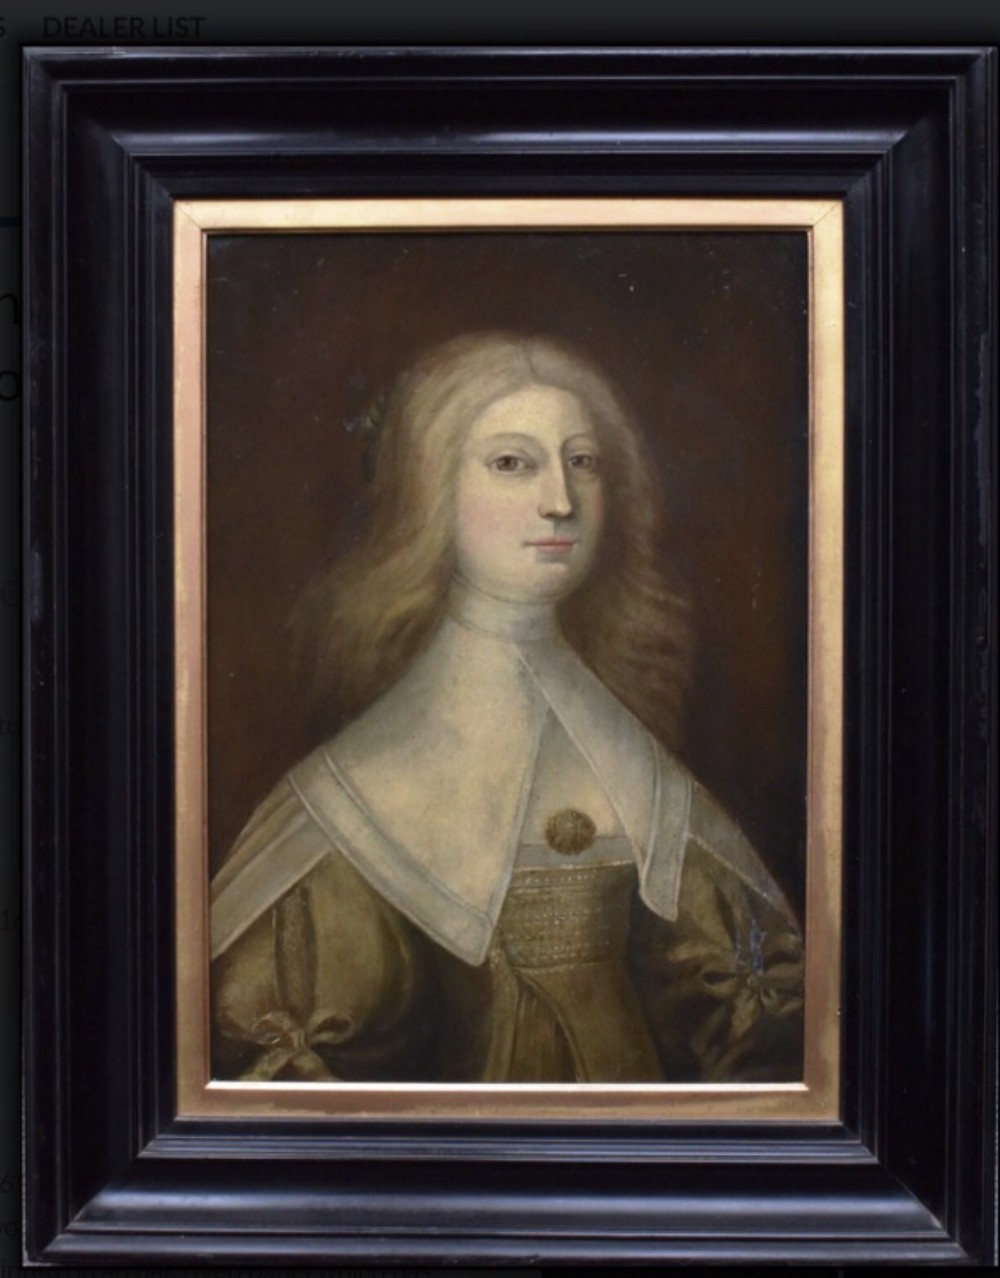 circa 1650 oil portrait painting on oak panel of a lady 17th century dutch golden age